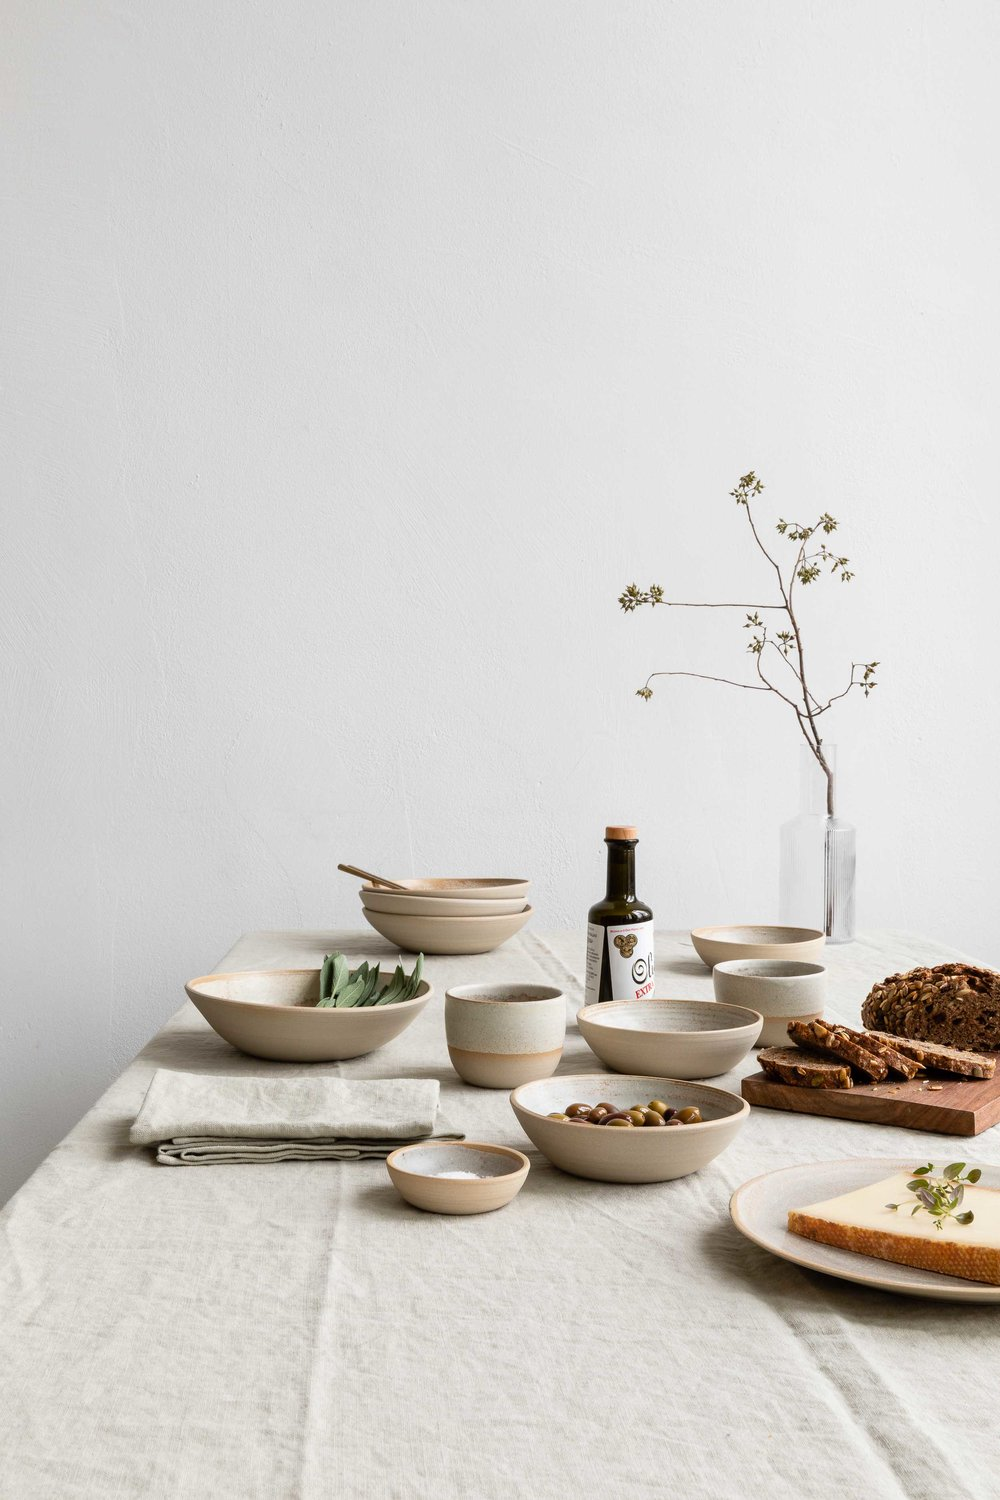 ceramics by annemieke boots | verdenius photography and styling